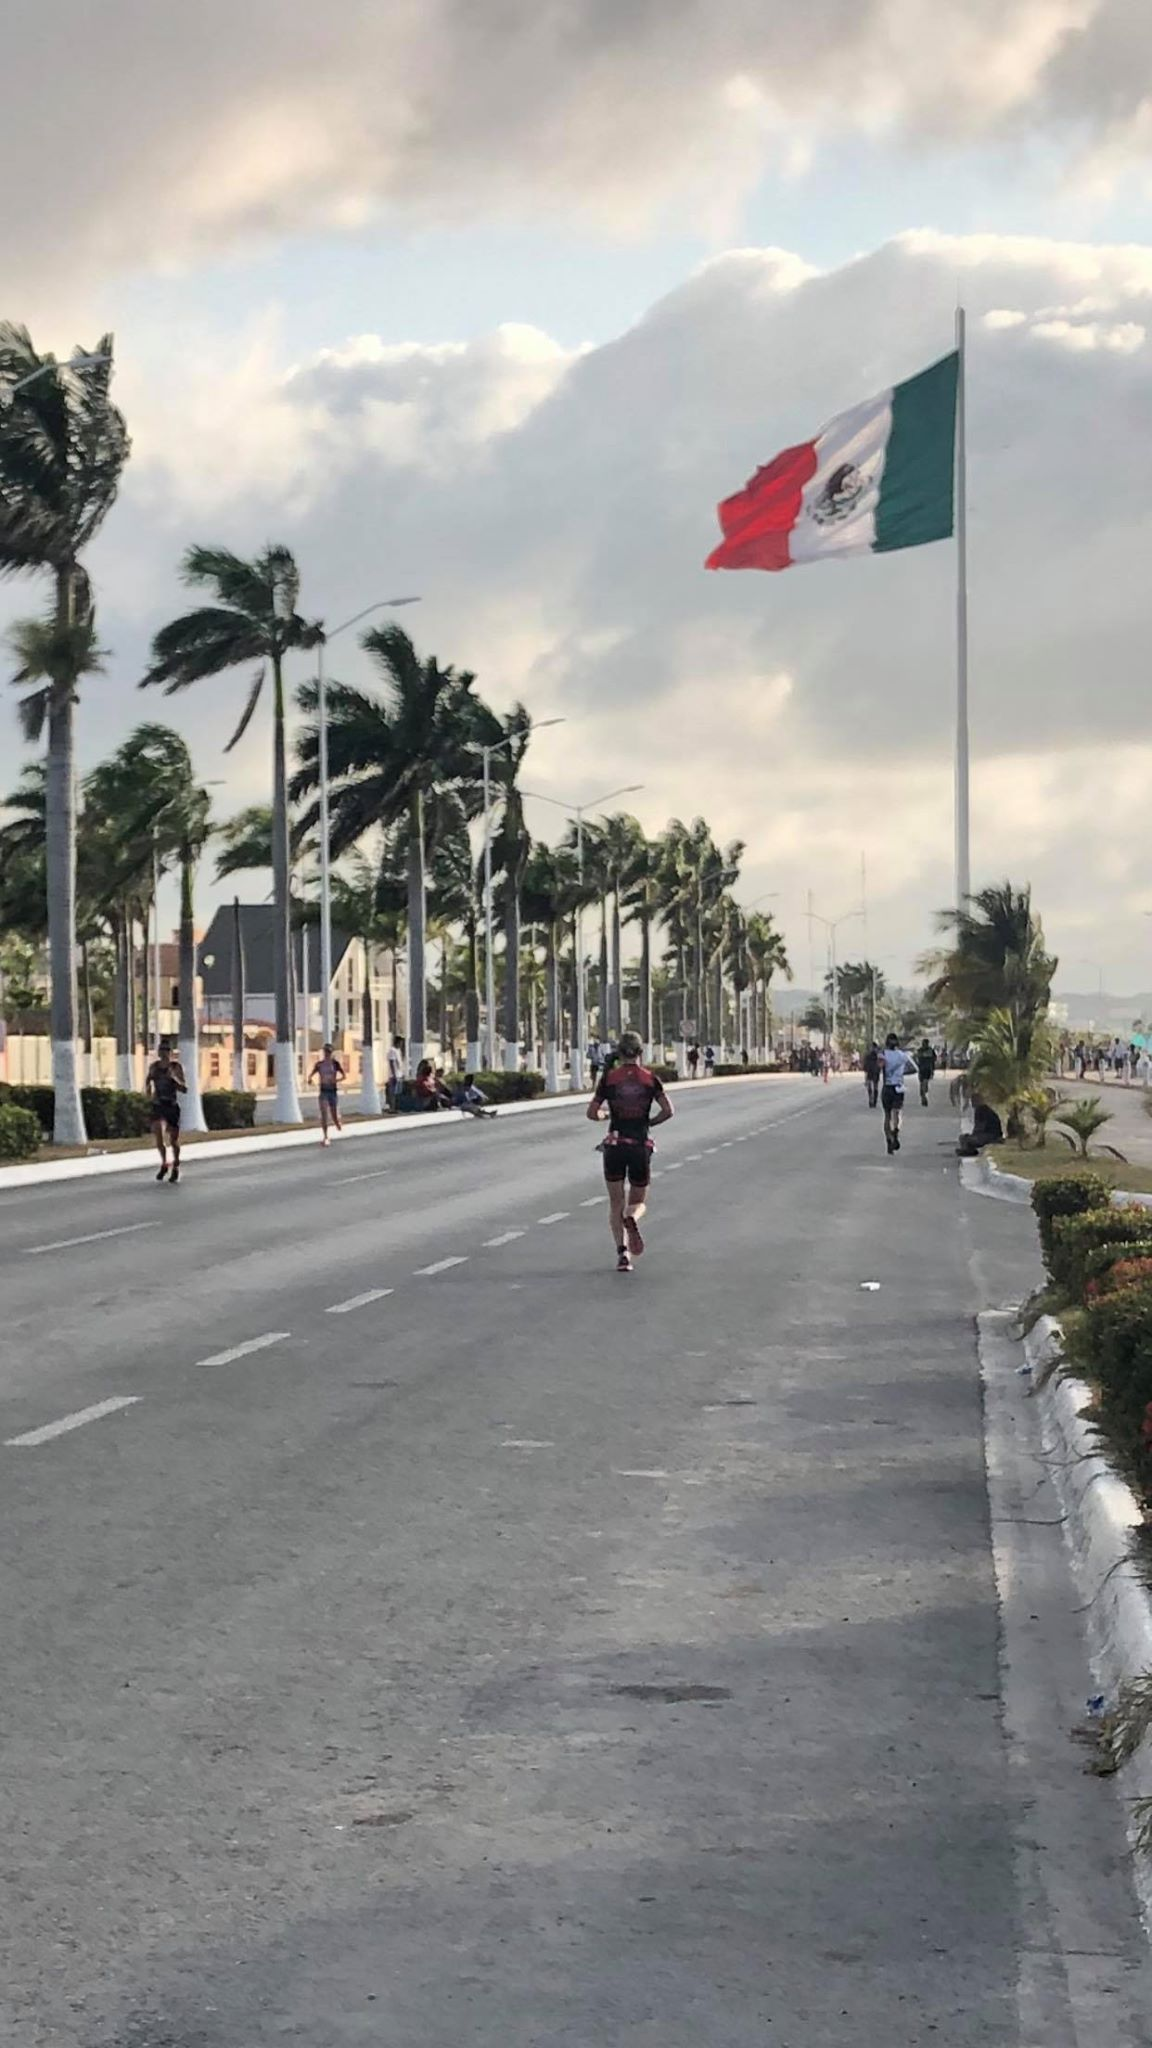 Coach_Terry_Wilson_Pursuit_of_The_Perfect_Race_IRONMAN_Campeche_Danielle_Dingman_10.jpg